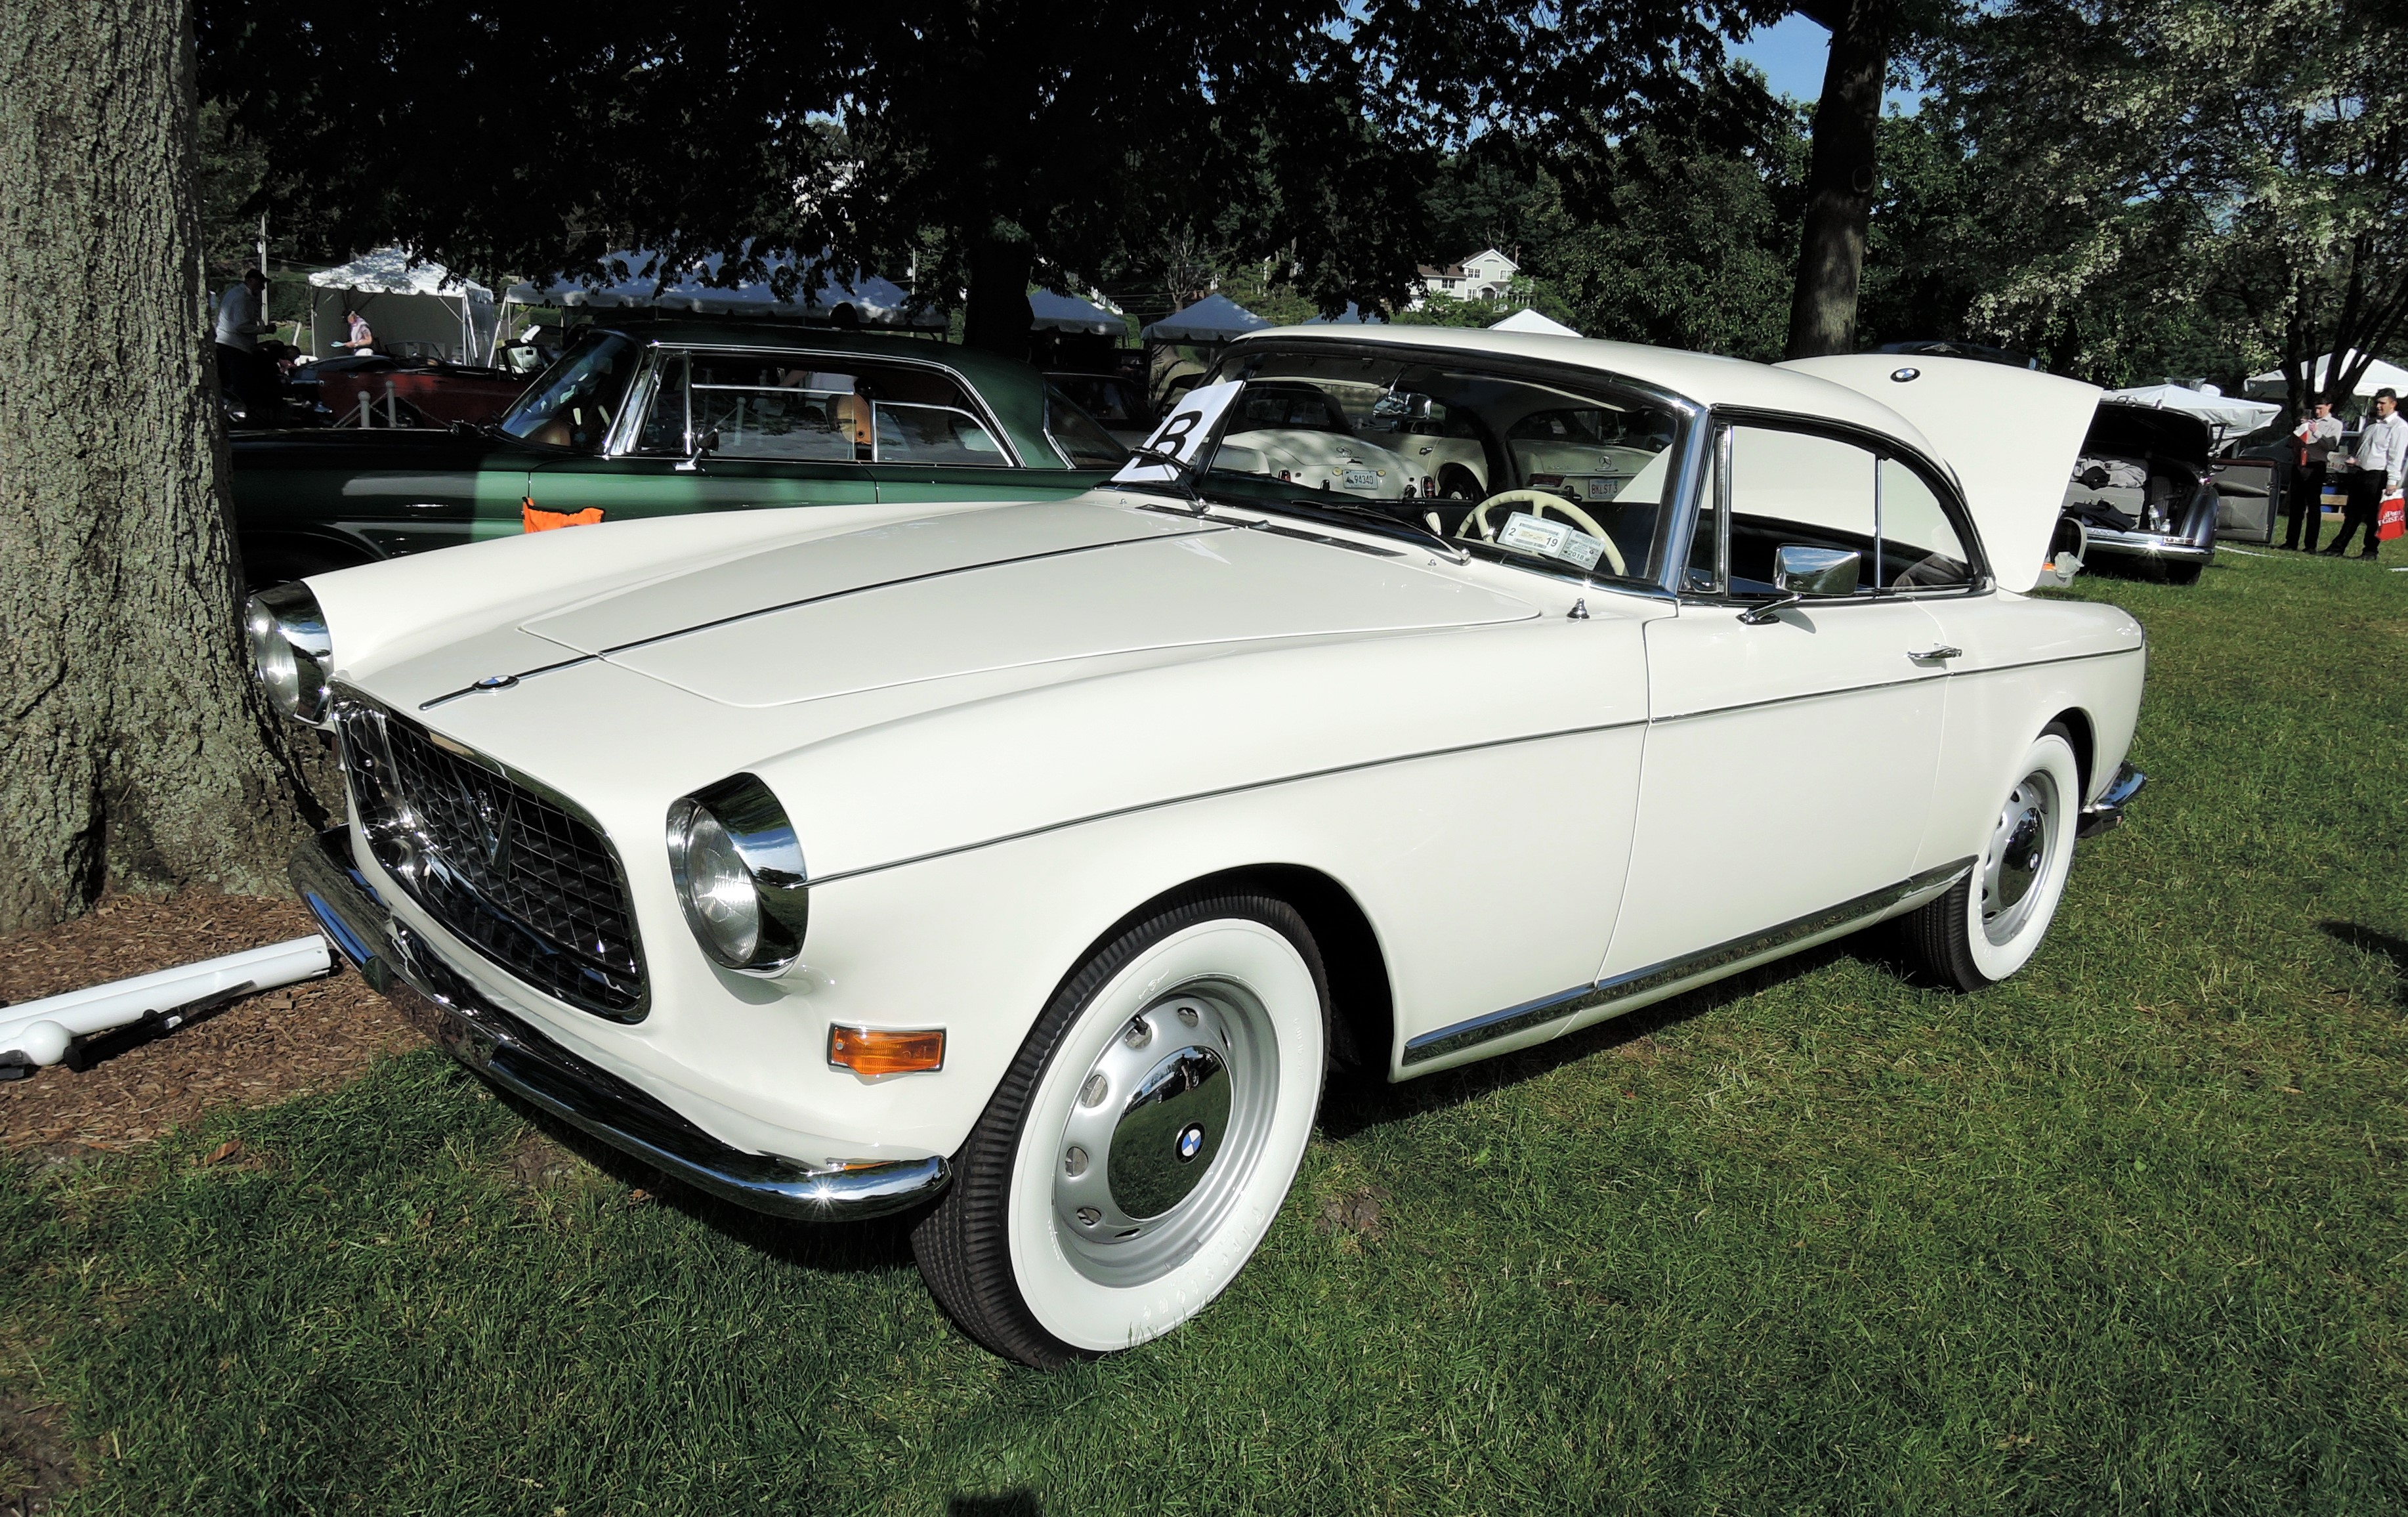 white 1957 BMW 503 Coupe - Greenwich Concours d'Elegance 2017